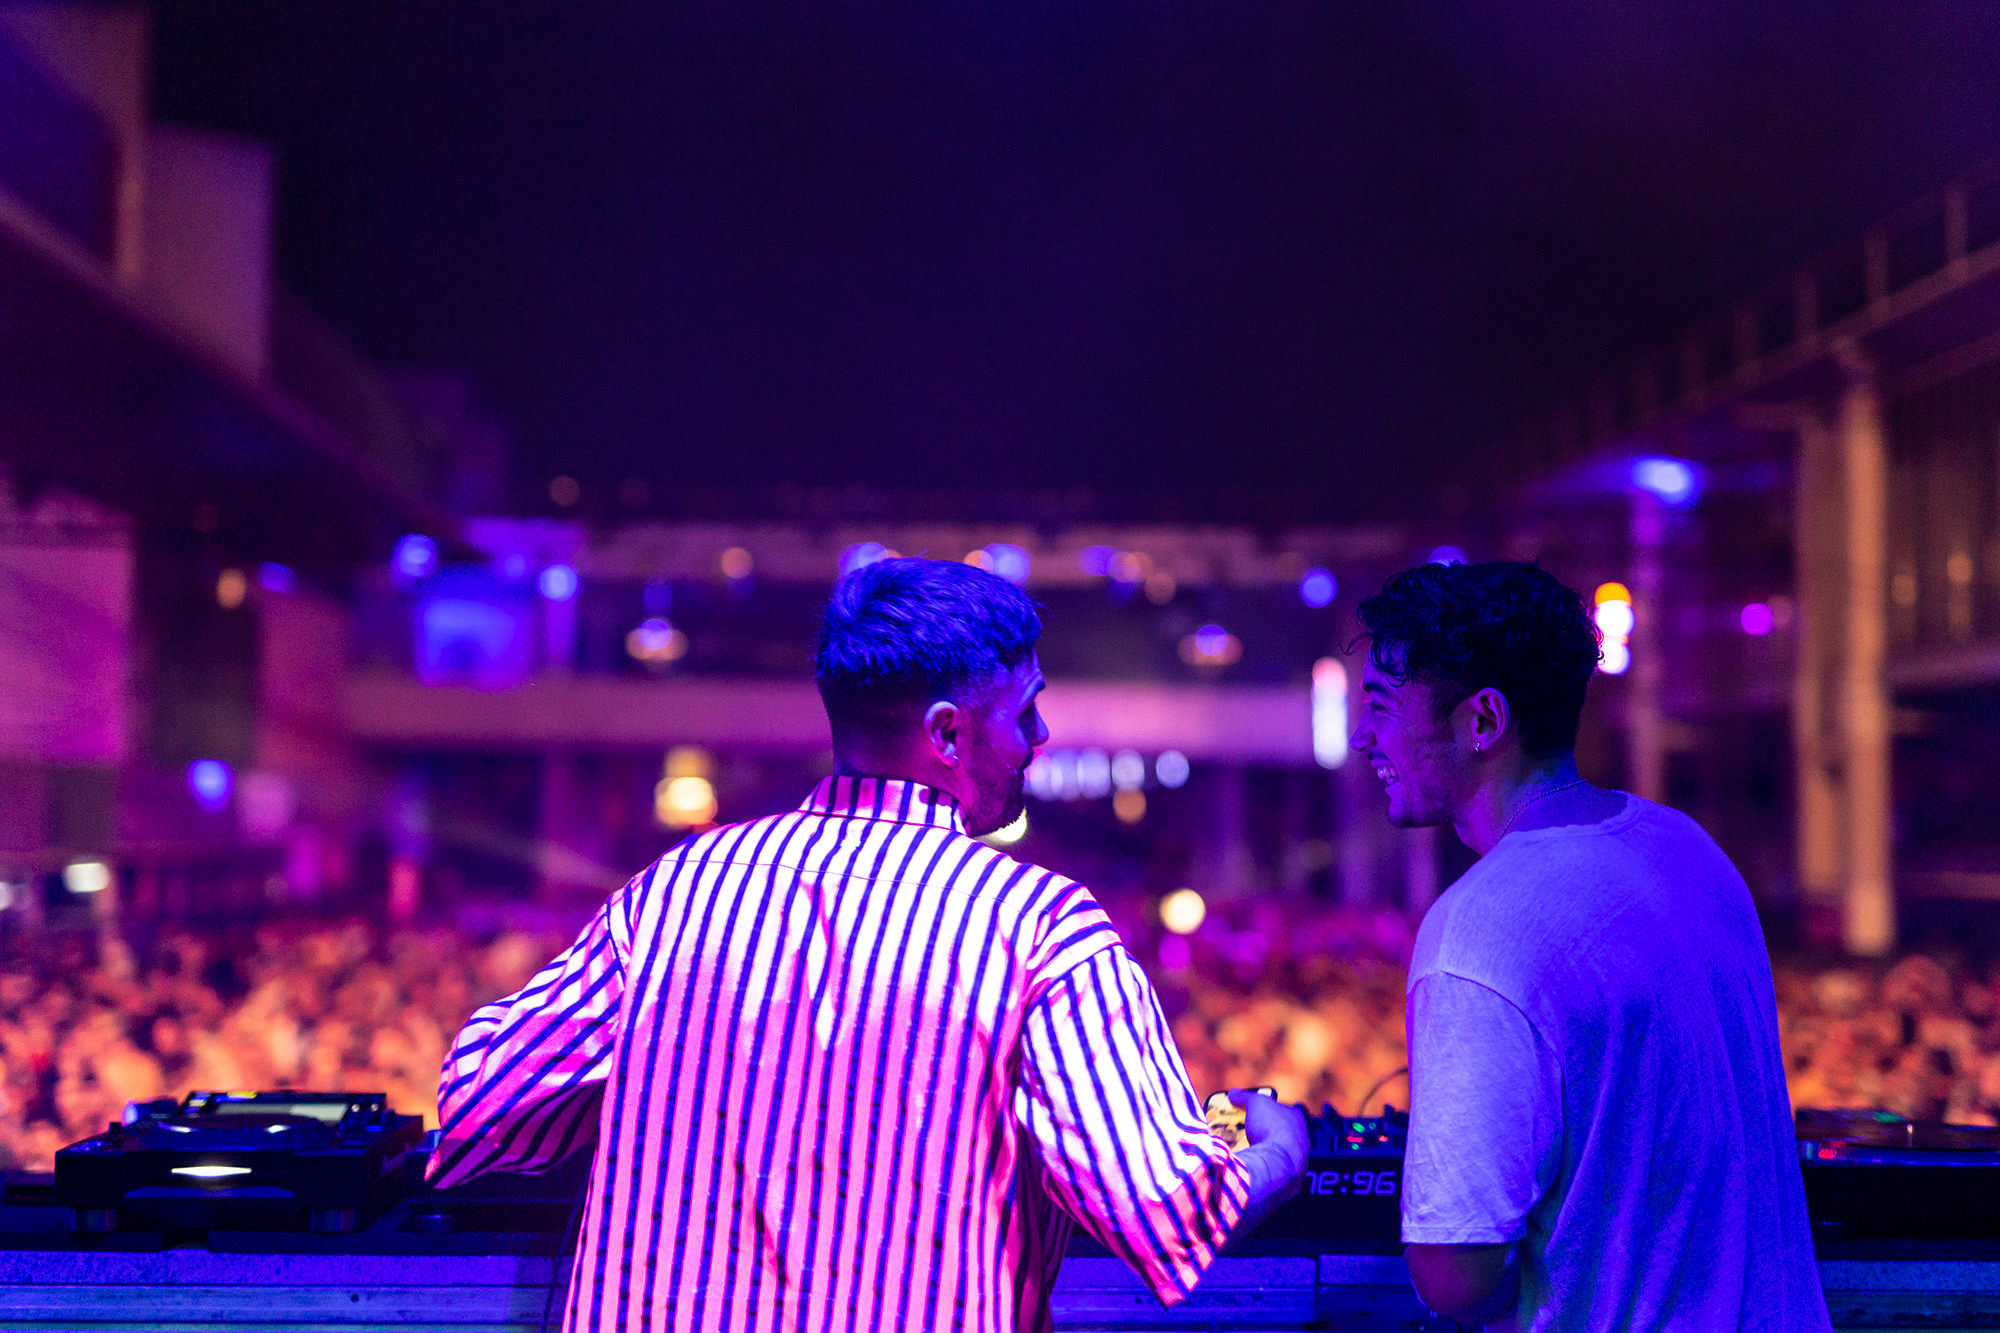 Listen to Blawan and Dax J back-to-back at Sónar